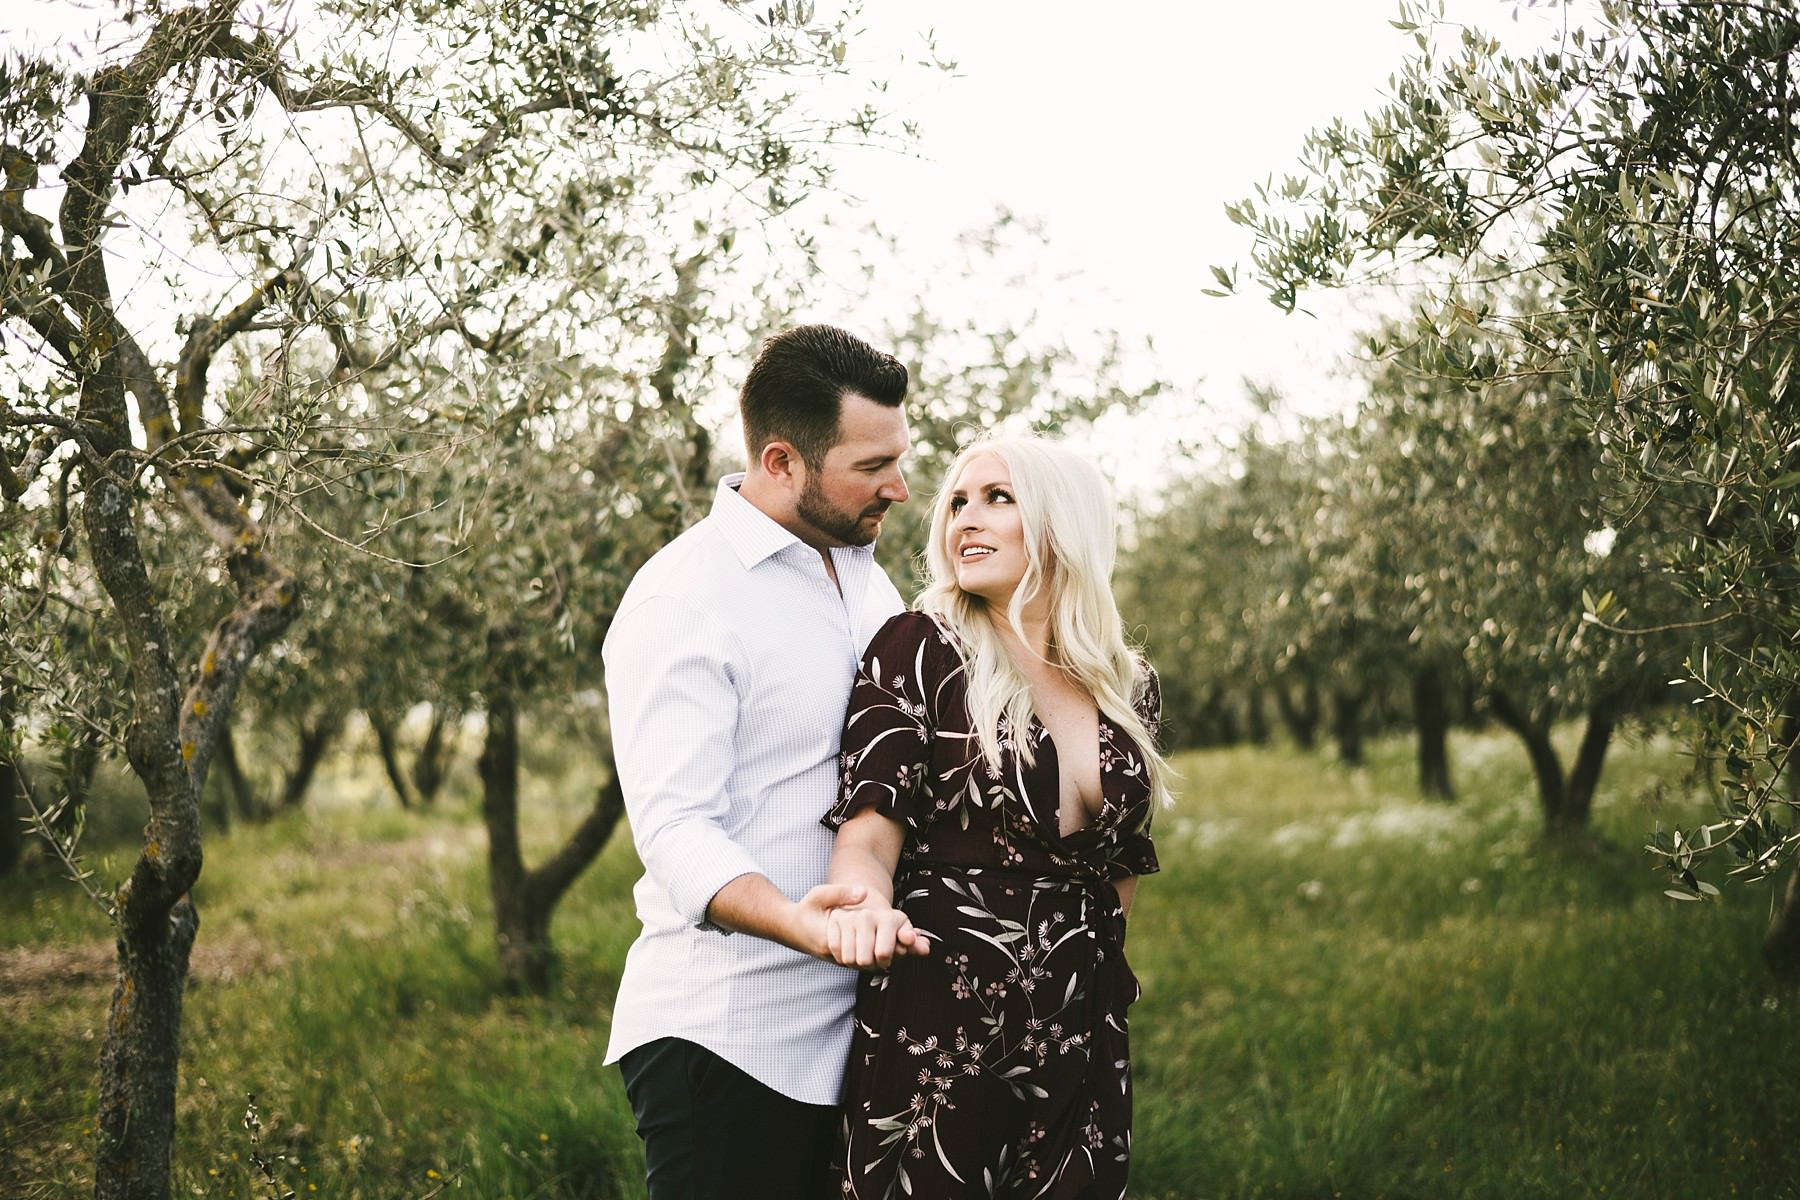 Emotional couple portrait honeymoon photo shoot in Tuscany olive trees field at unforgettable venue of Castella La Leccia